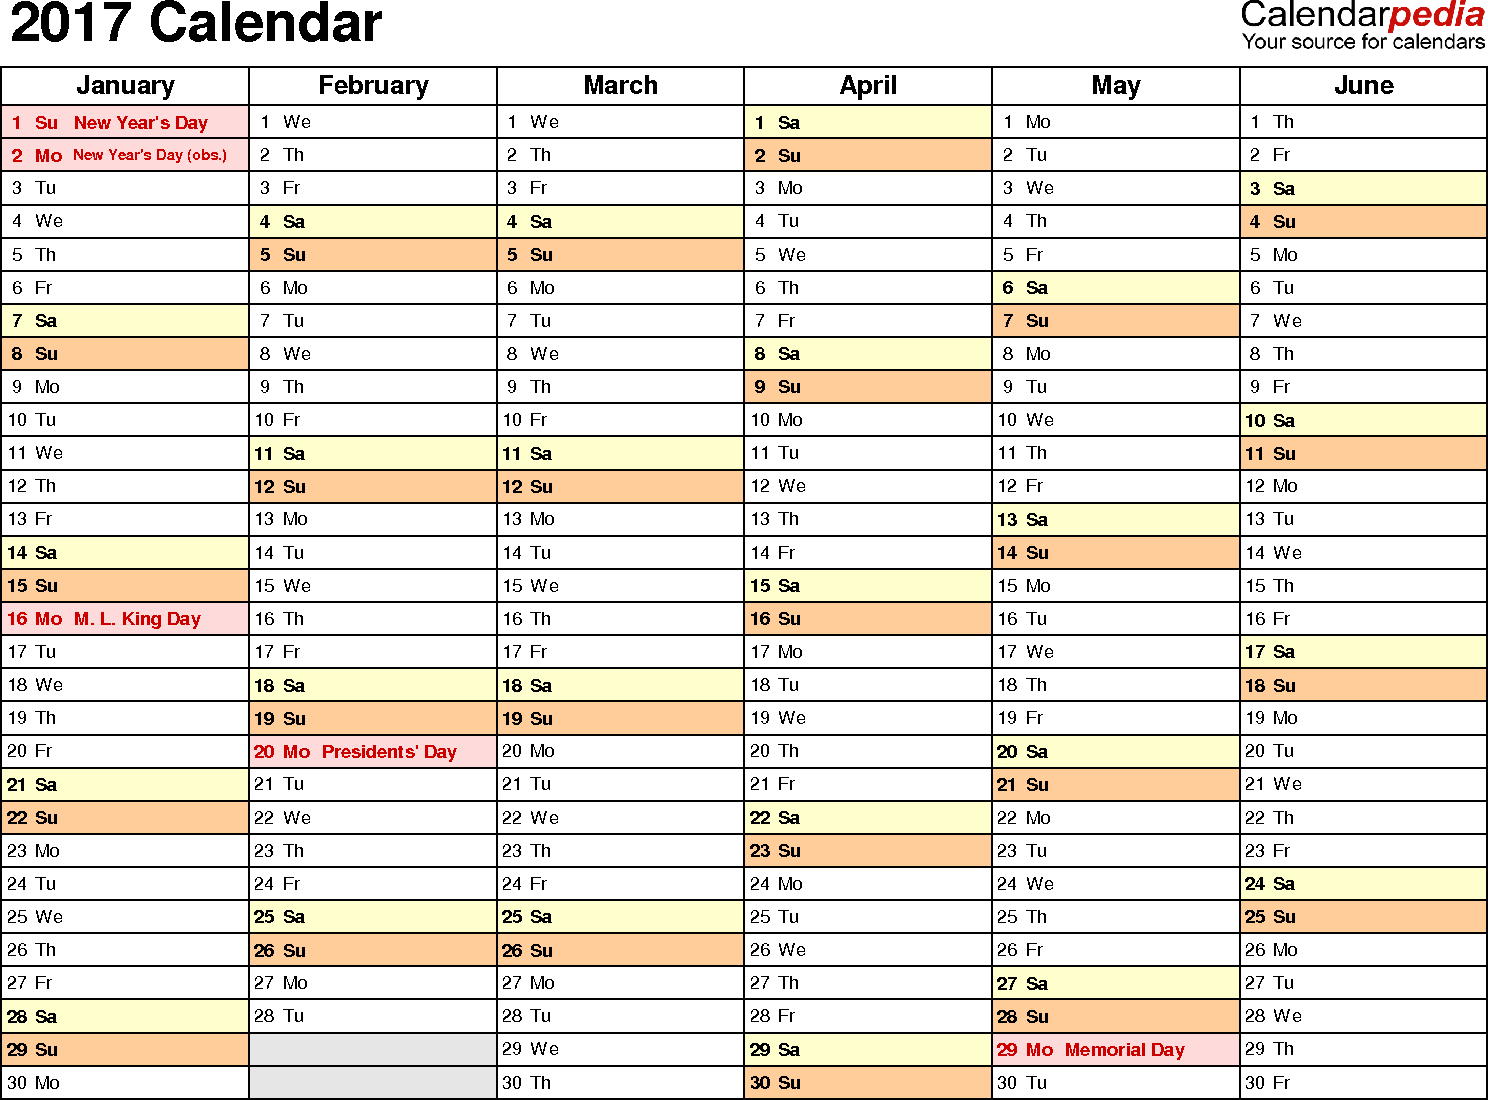 Ediblewildsus  Marvelous  Calendar  Download  Free Printable Excel Templates Xls With Likable Template   Calendar For Excel Months Horizontally  Pages Landscape Orientation With Divine Conditional If Excel Also Grocery List Excel In Addition Range Finder Excel And How To Use Vlookup Function In Excel As Well As Marketing Engineering For Excel Additionally Excel Formula Cell Color From Calendarpediacom With Ediblewildsus  Likable  Calendar  Download  Free Printable Excel Templates Xls With Divine Template   Calendar For Excel Months Horizontally  Pages Landscape Orientation And Marvelous Conditional If Excel Also Grocery List Excel In Addition Range Finder Excel From Calendarpediacom